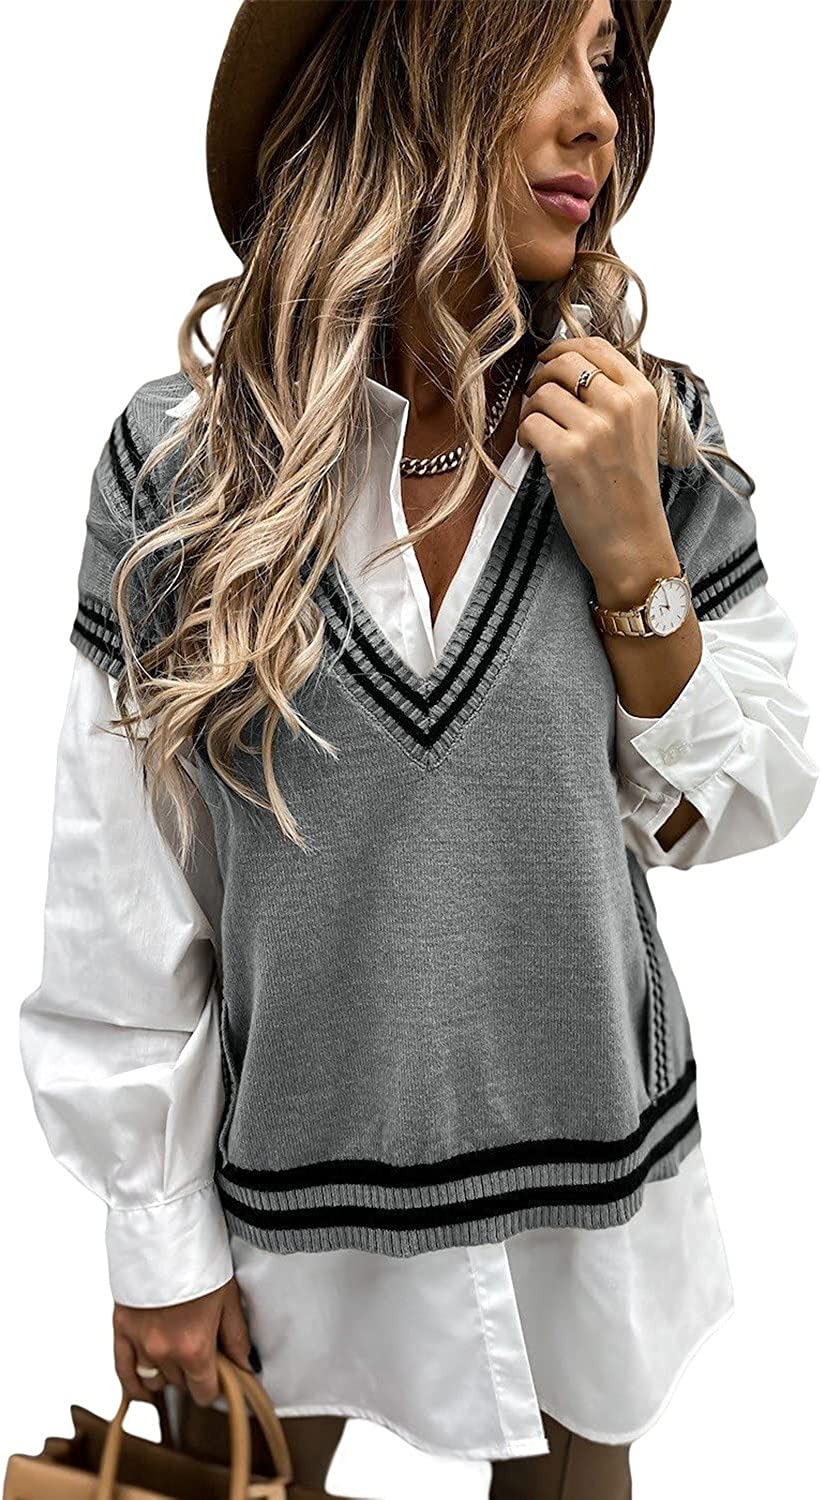 Uusollecy Women V Neck Stripes Sweater Vest Casual Sleeveless Knit Sweater Winter Cable Knit Tops Pullover Sweater